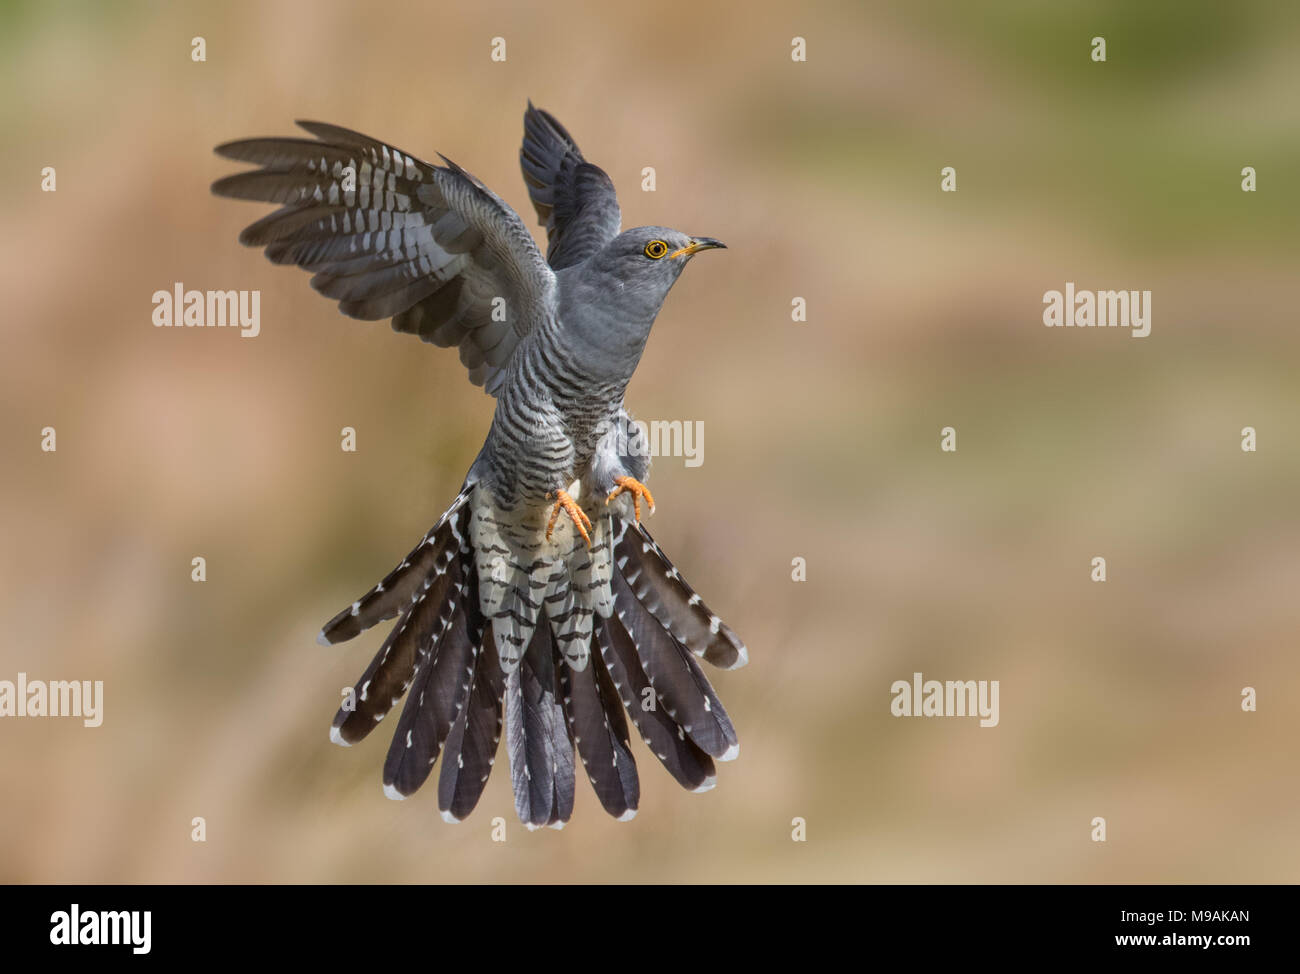 Cuckoo prepared for landing - Stock Image